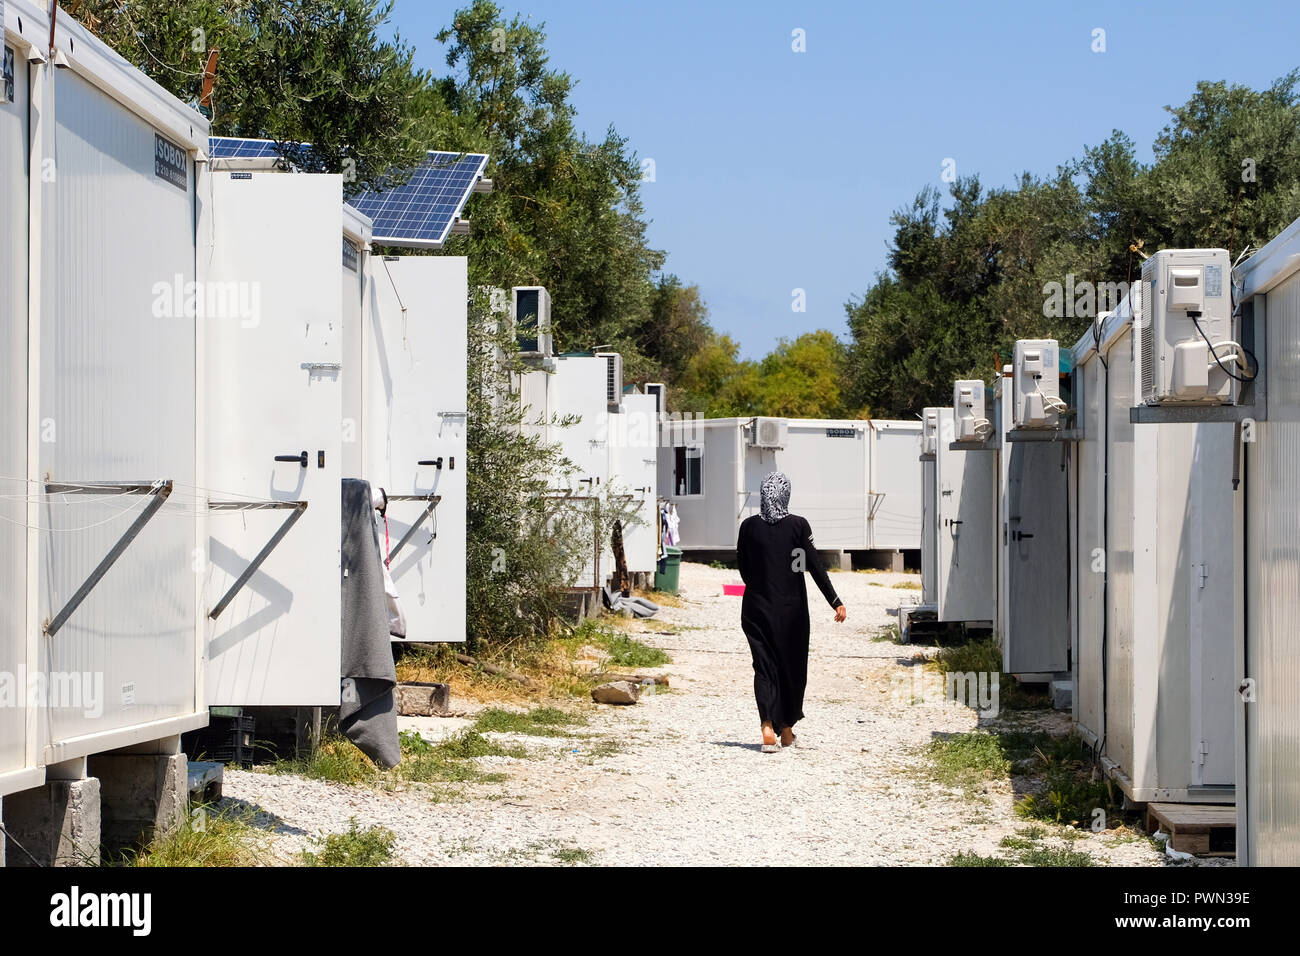 Residential container at the KARA TEPE Hospitality Center for Refugees and Migrants, local refugee camp near the island's capital, Mytilini, Lesvos Island, Greece, May 2018 - Wohncontainer im KARA TEPE Hospitality Center for Refugees and Migrants, lokales Flüchtlingscamp nahe der Inselhauptstadt Mytilini, Insel Lesbos, Griechenland, Mai 2018 - Stock Image